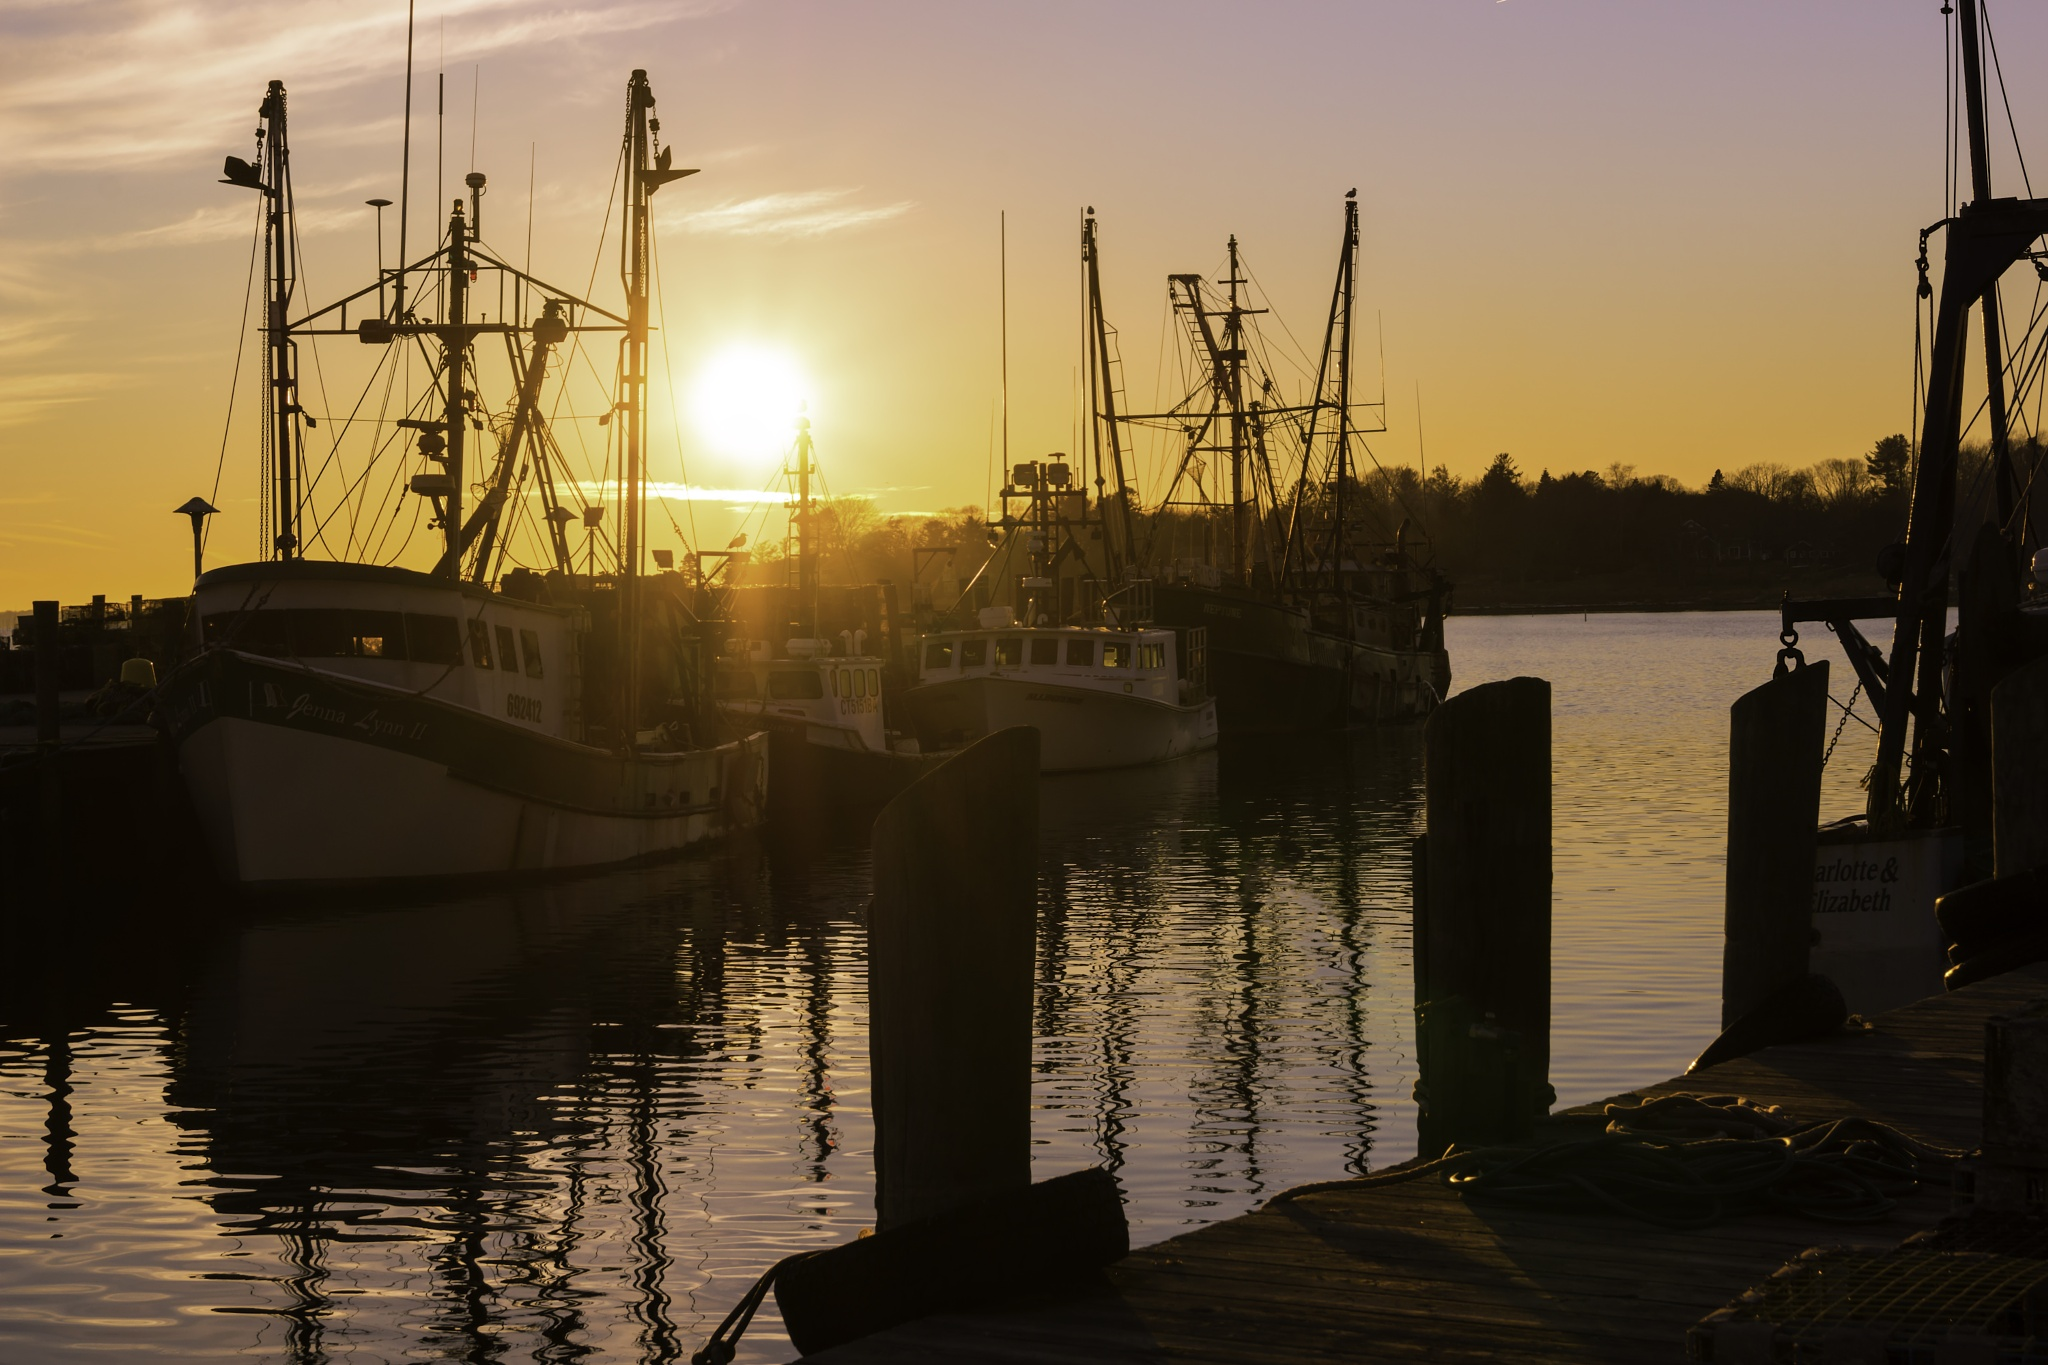 Town Dock Sunset by JoeGeraci